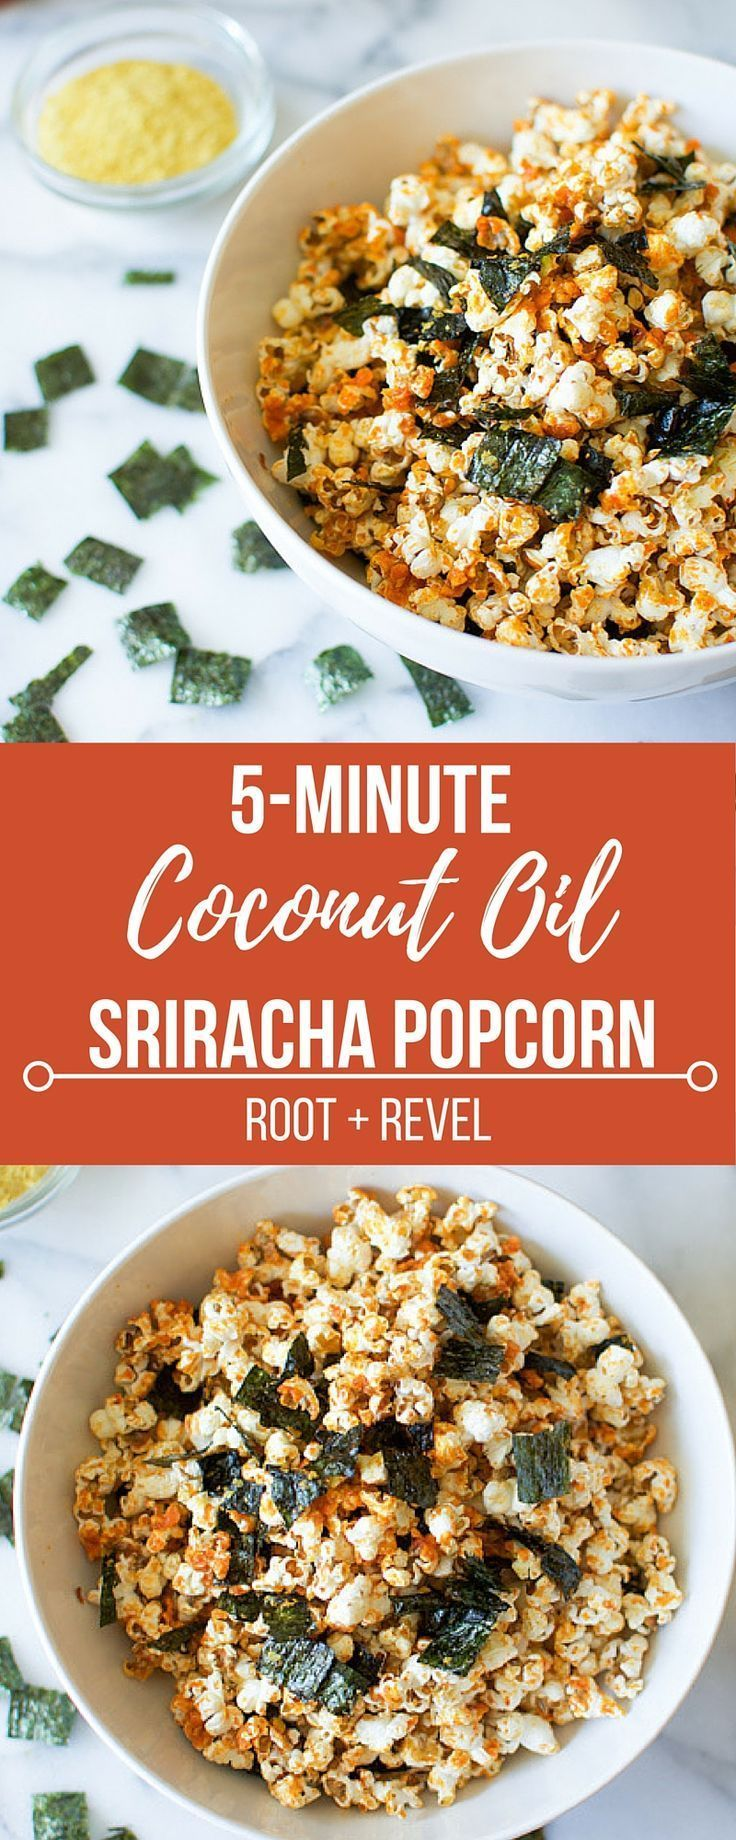 In 5 minutes, you can create a healthy, delicious snack full of nutrients. Coconut oil sriracha popcorn with nori is salty and spicy with lots of umami.